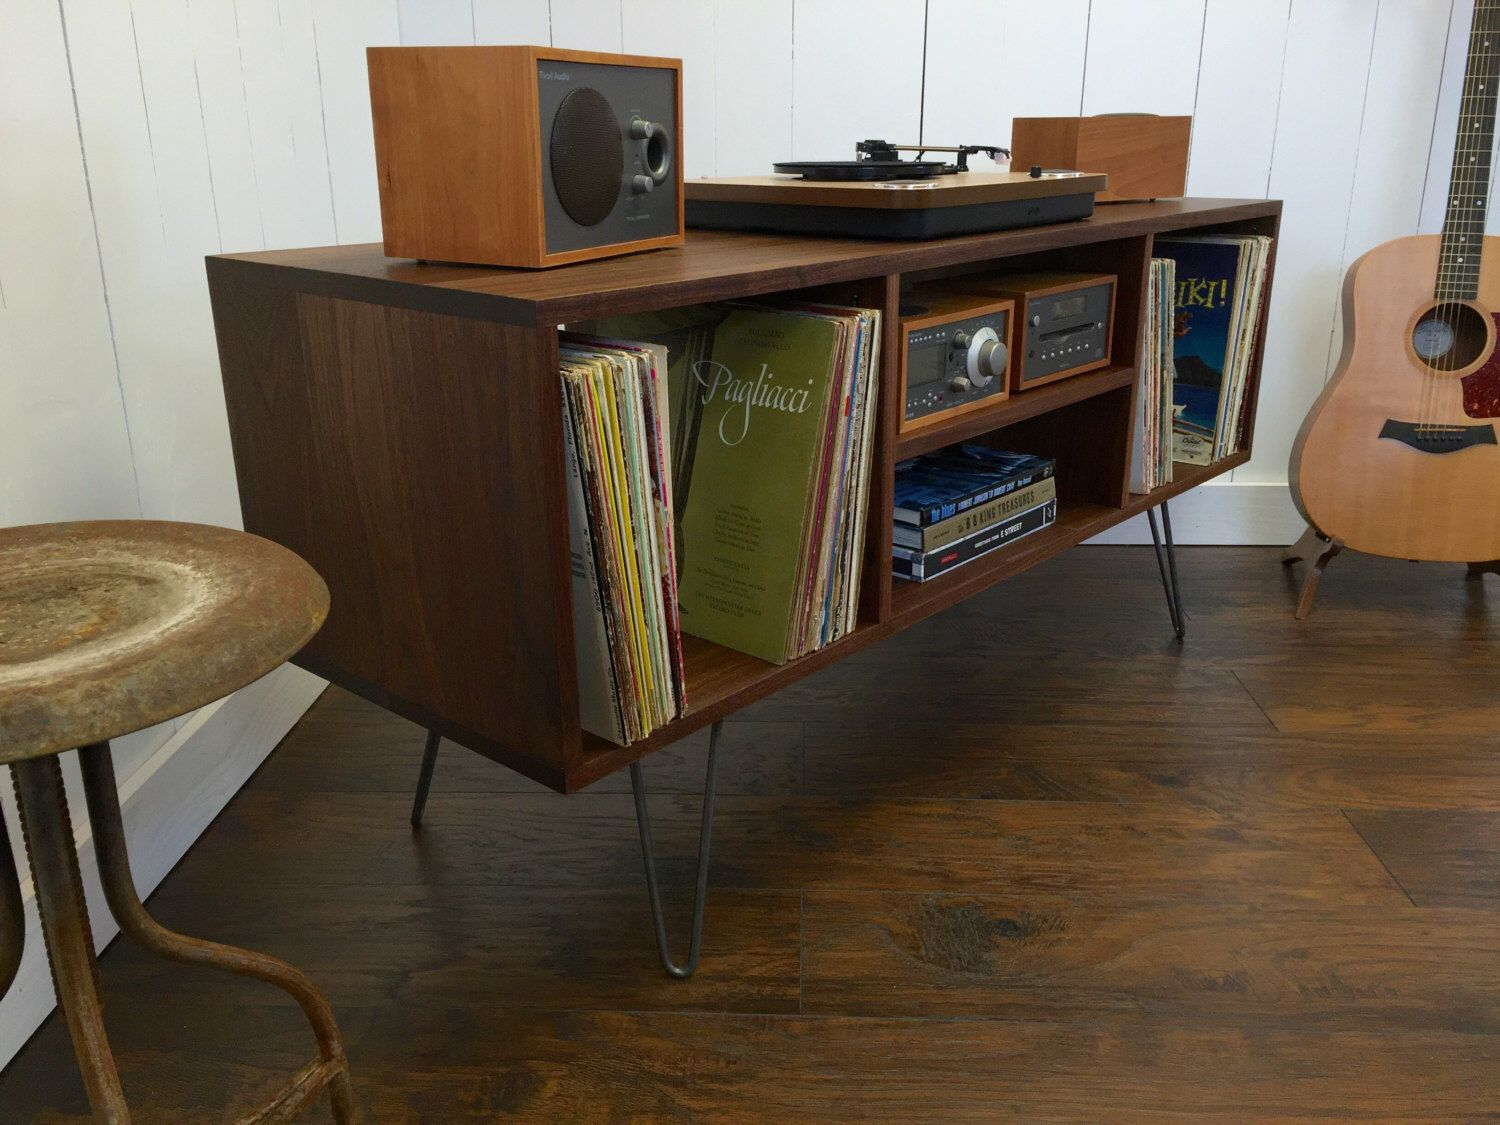 New Mid Century Modern Record Player Console, Stereo Cabinet With LP Album  Storage Featuring Black